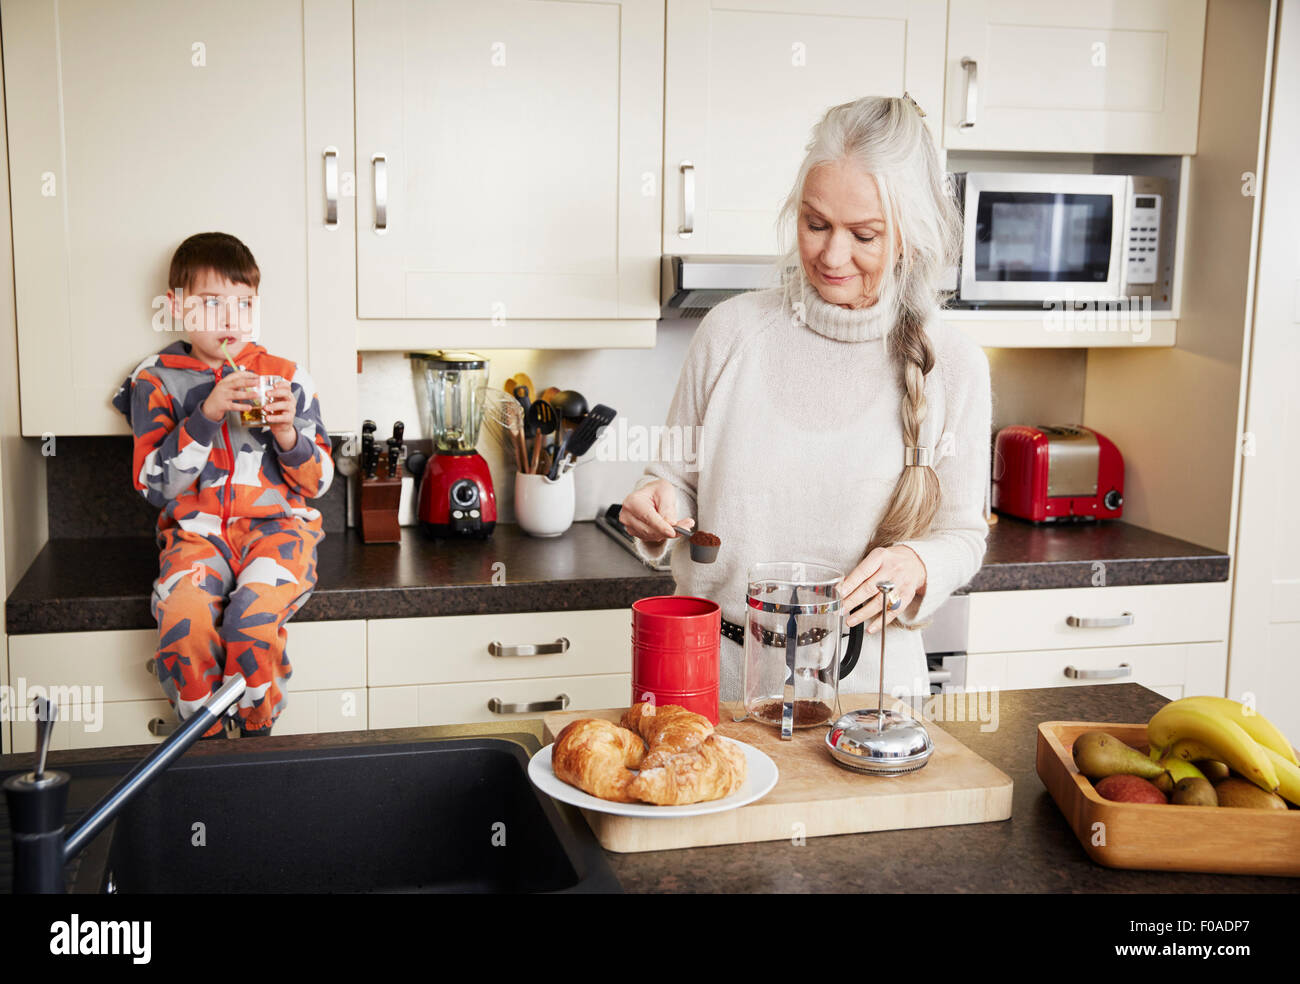 Grandmother making coffee, grandson sitting on kitchen counter - Stock Image